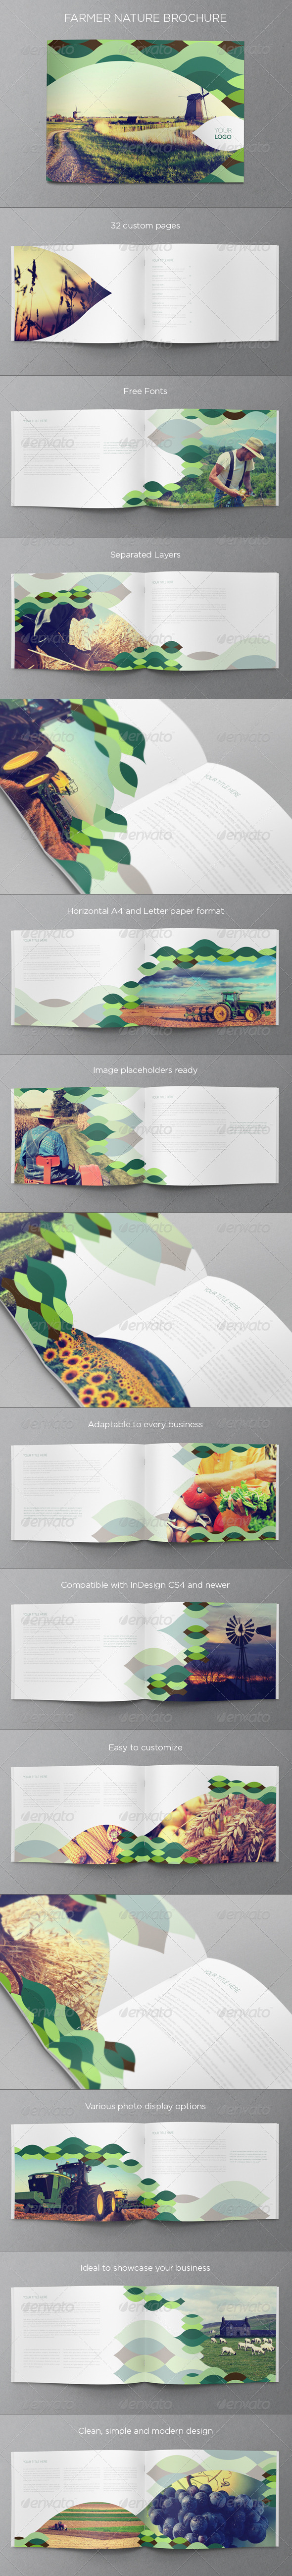 GraphicRiver Green Nature Brochure 6151806